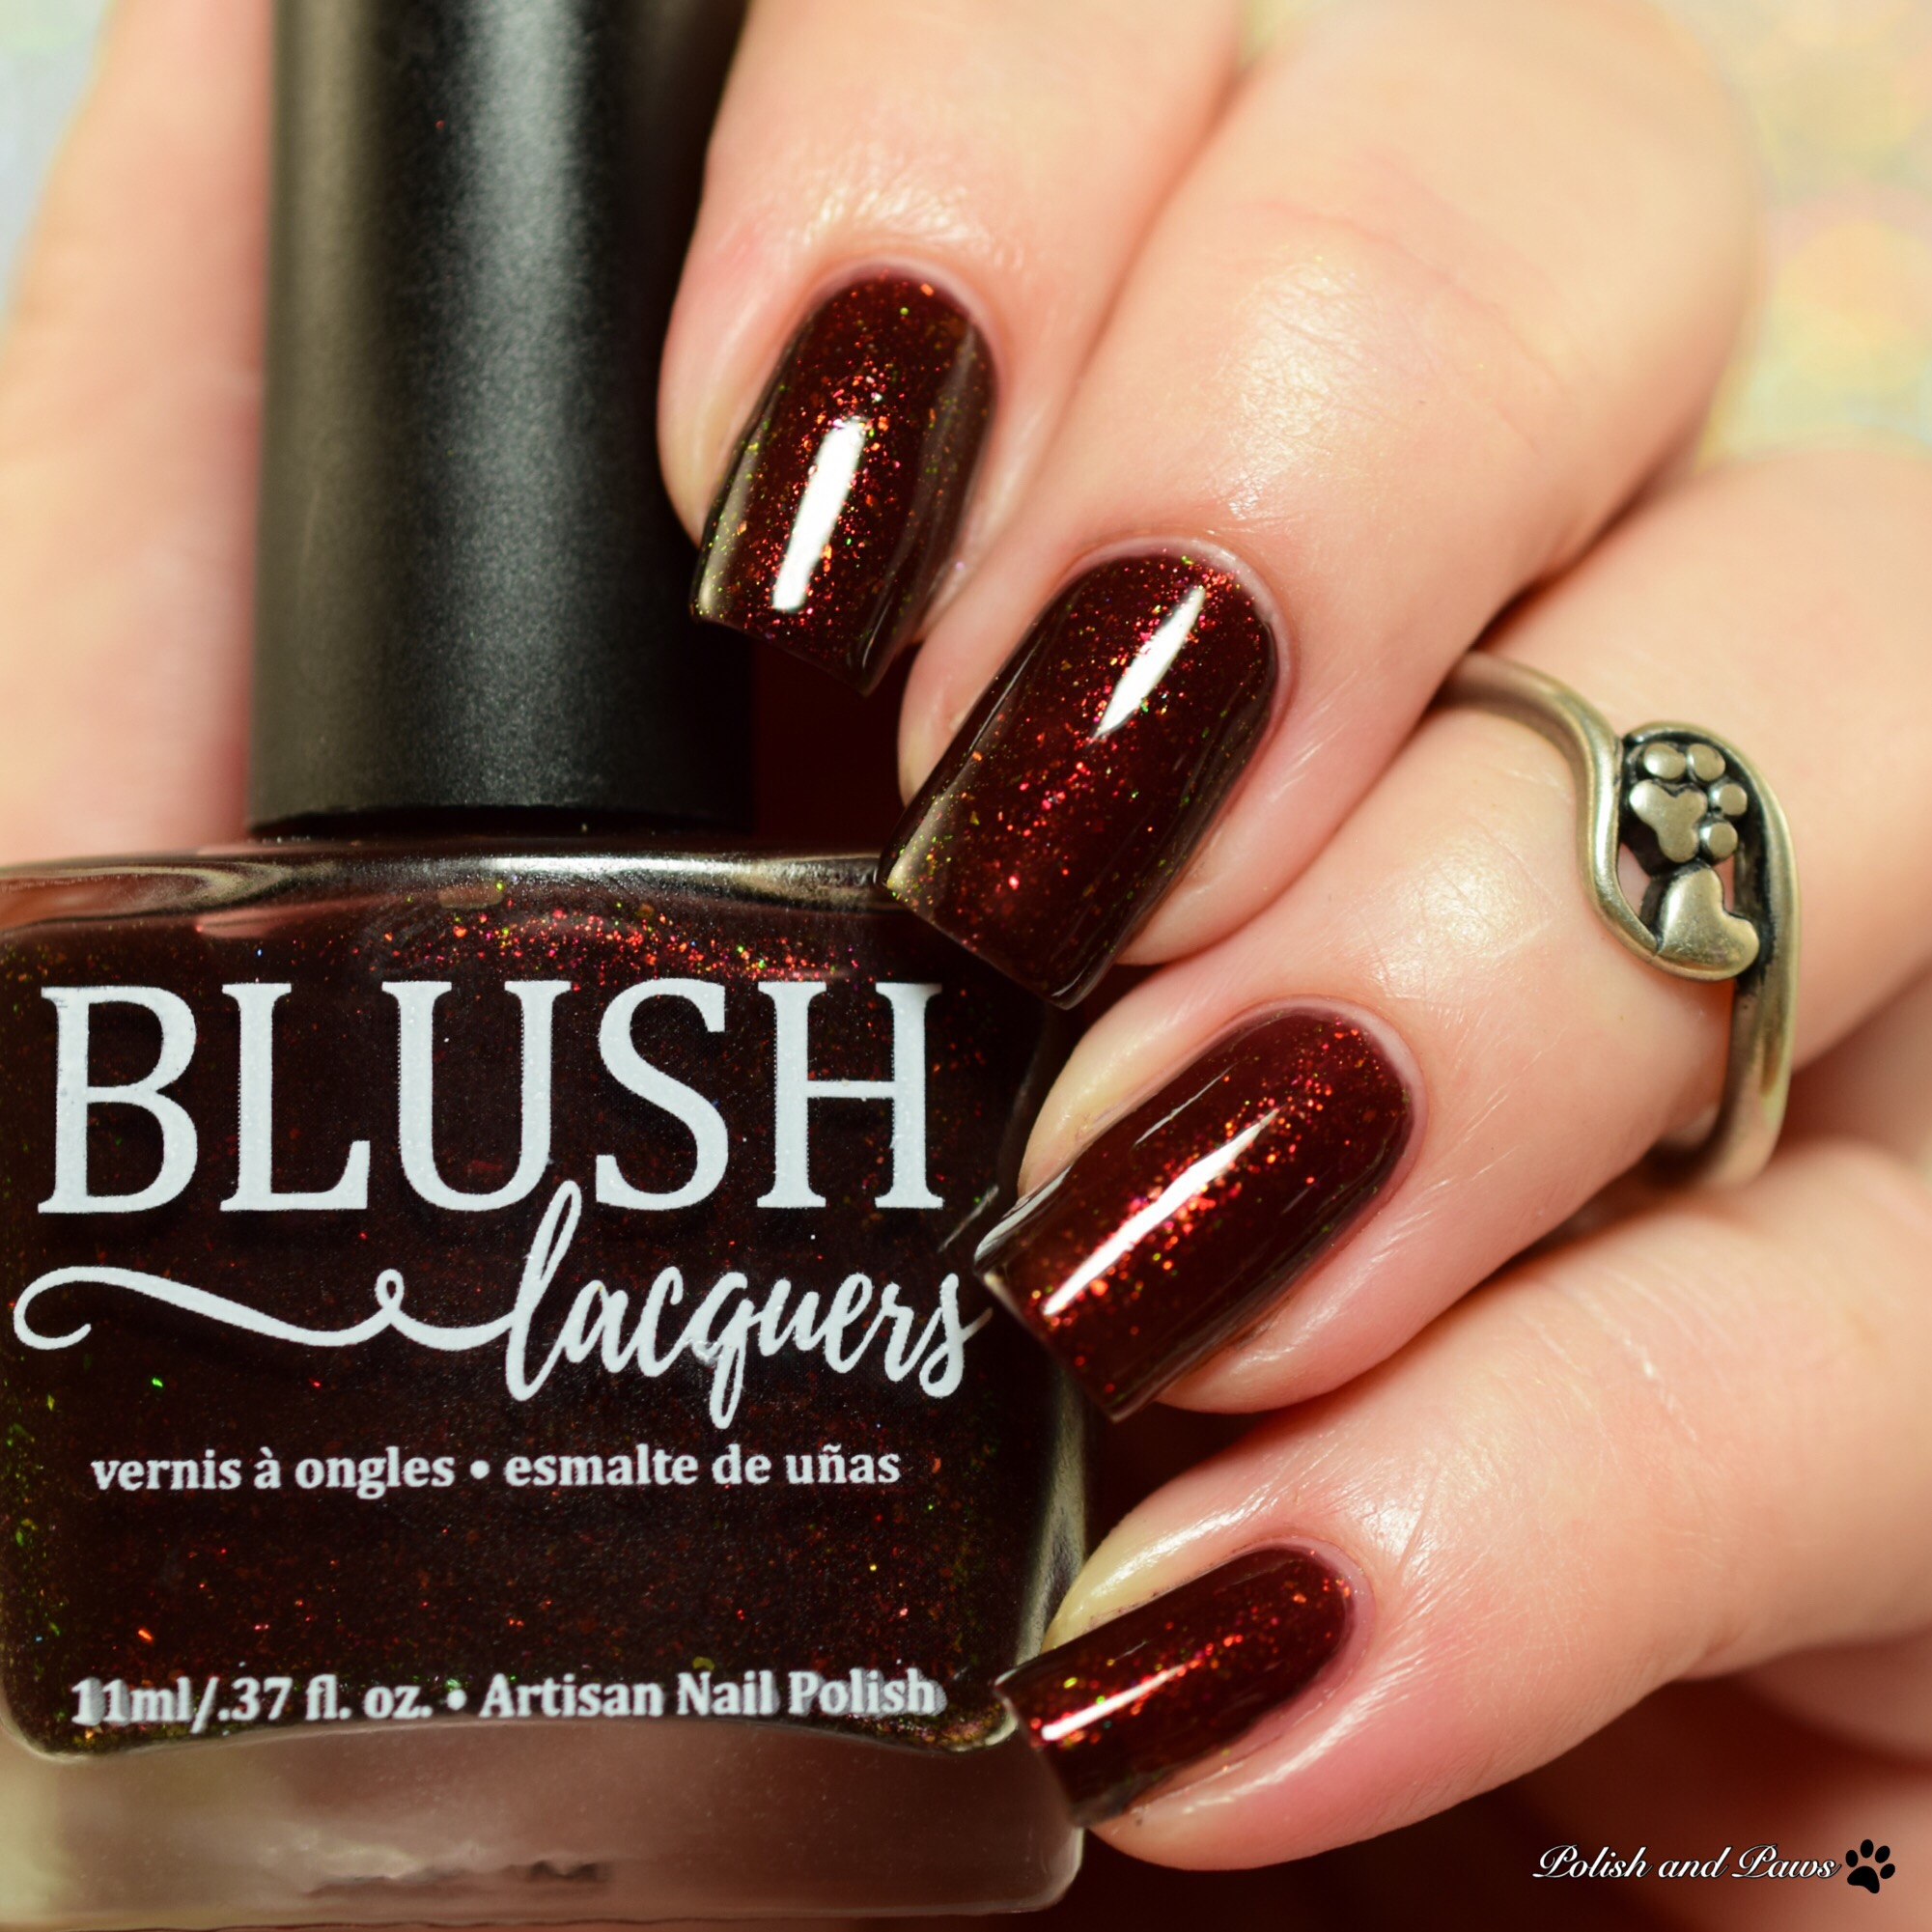 Blush Lacquers Spiced Cocoa